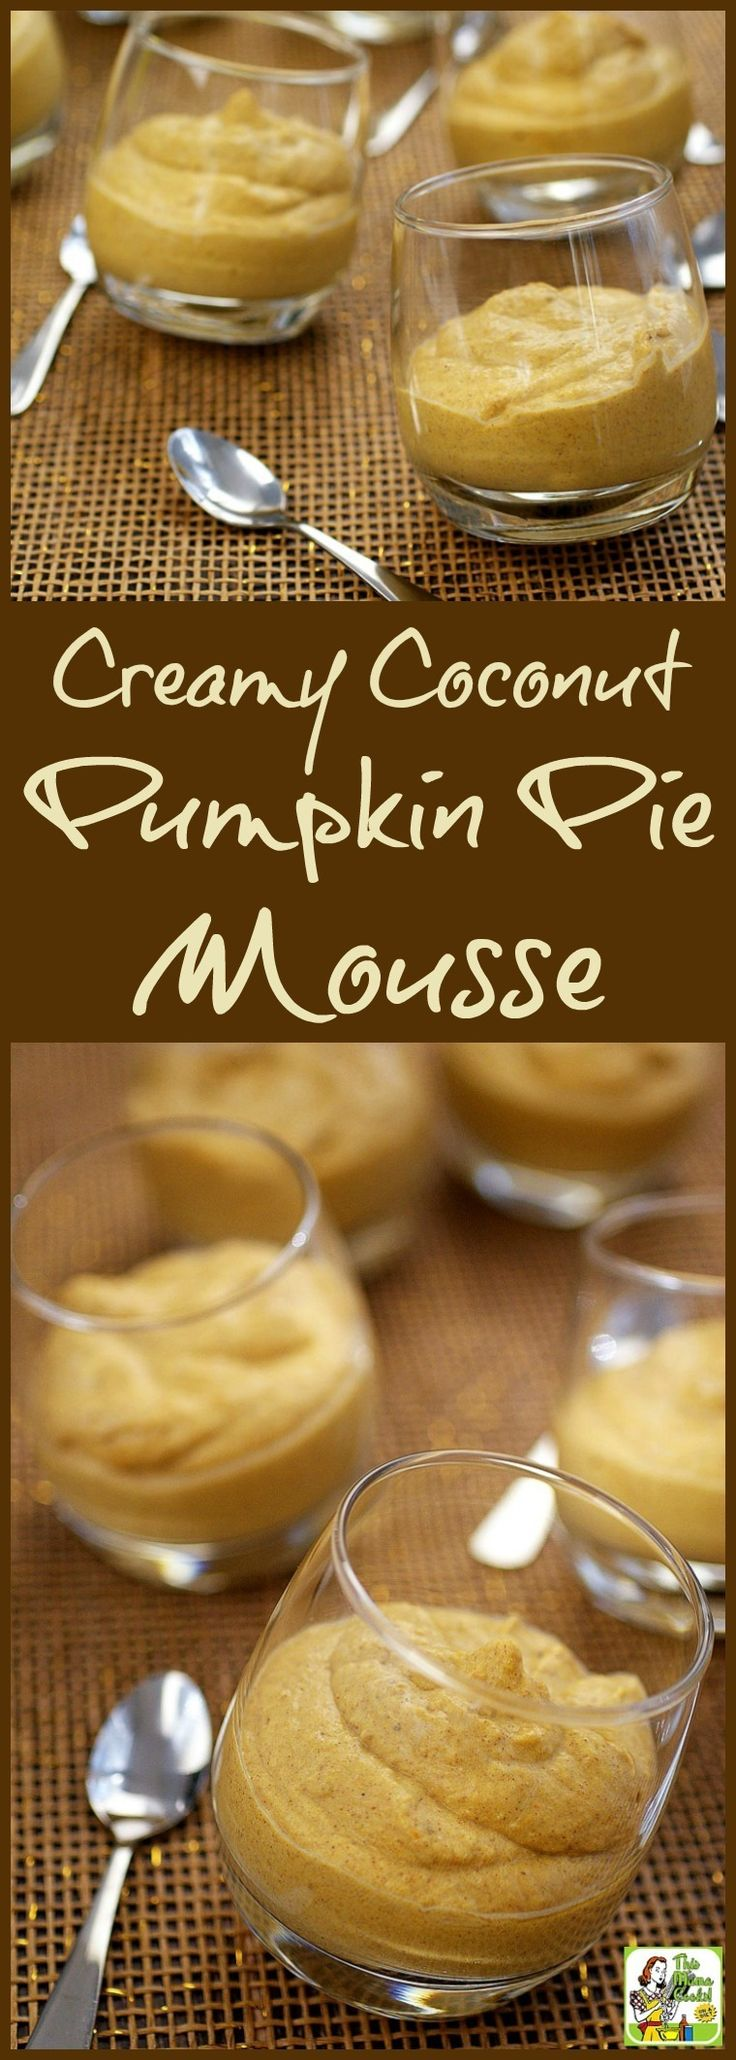 This Cream Coconut Pumpkin Pie Mousse recipe is vegan, gluten free, dairy free, paleo, and sugar free. Bring it to your next Halloween, Fall or Thanksgiving party. Click here to get this healthy, easy to make dessert recipe!